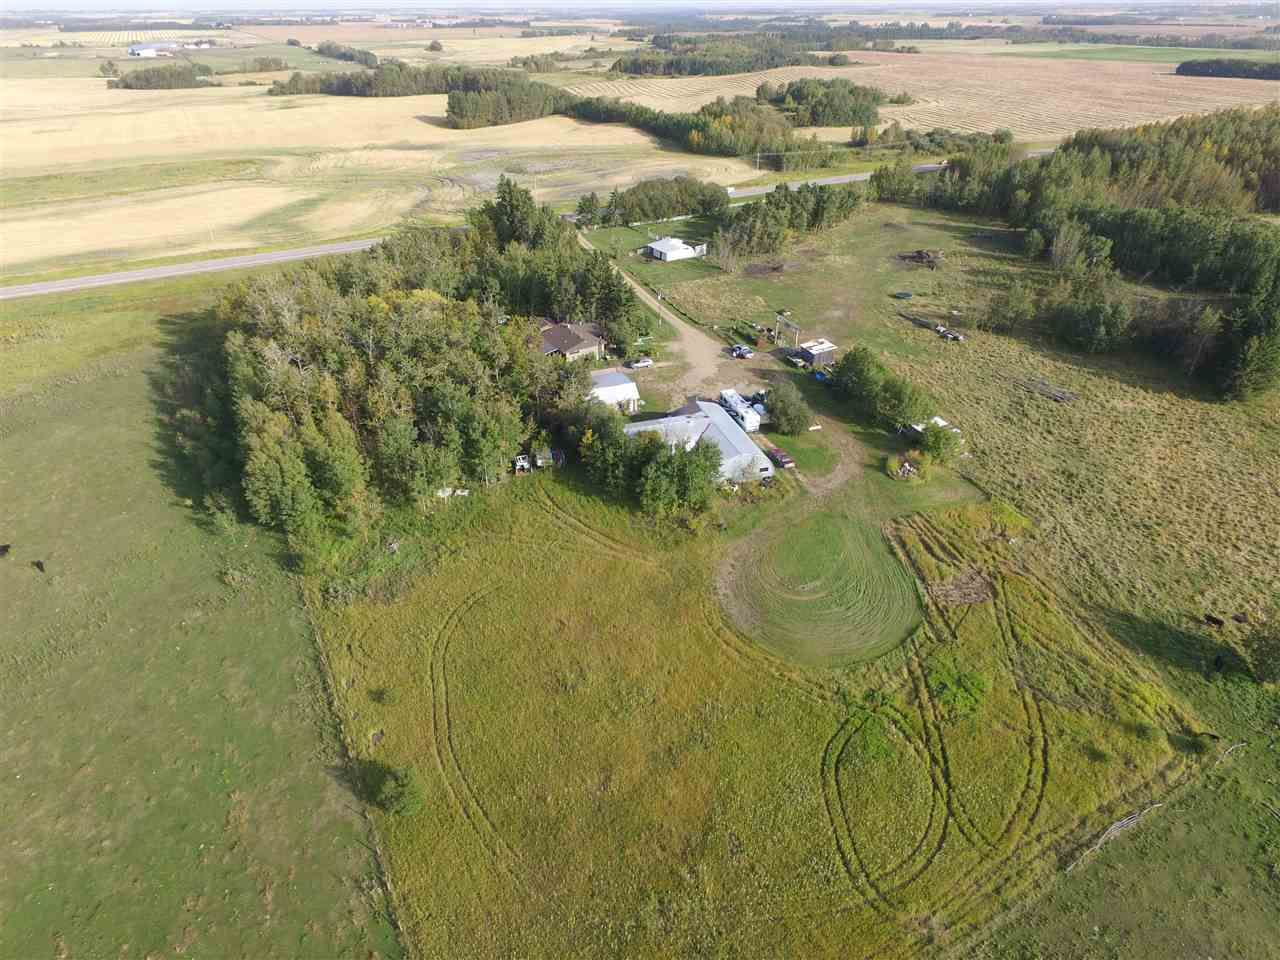 Photo 22: Photos: 472050A Hwy 814: Rural Wetaskiwin County House for sale : MLS®# E4213442